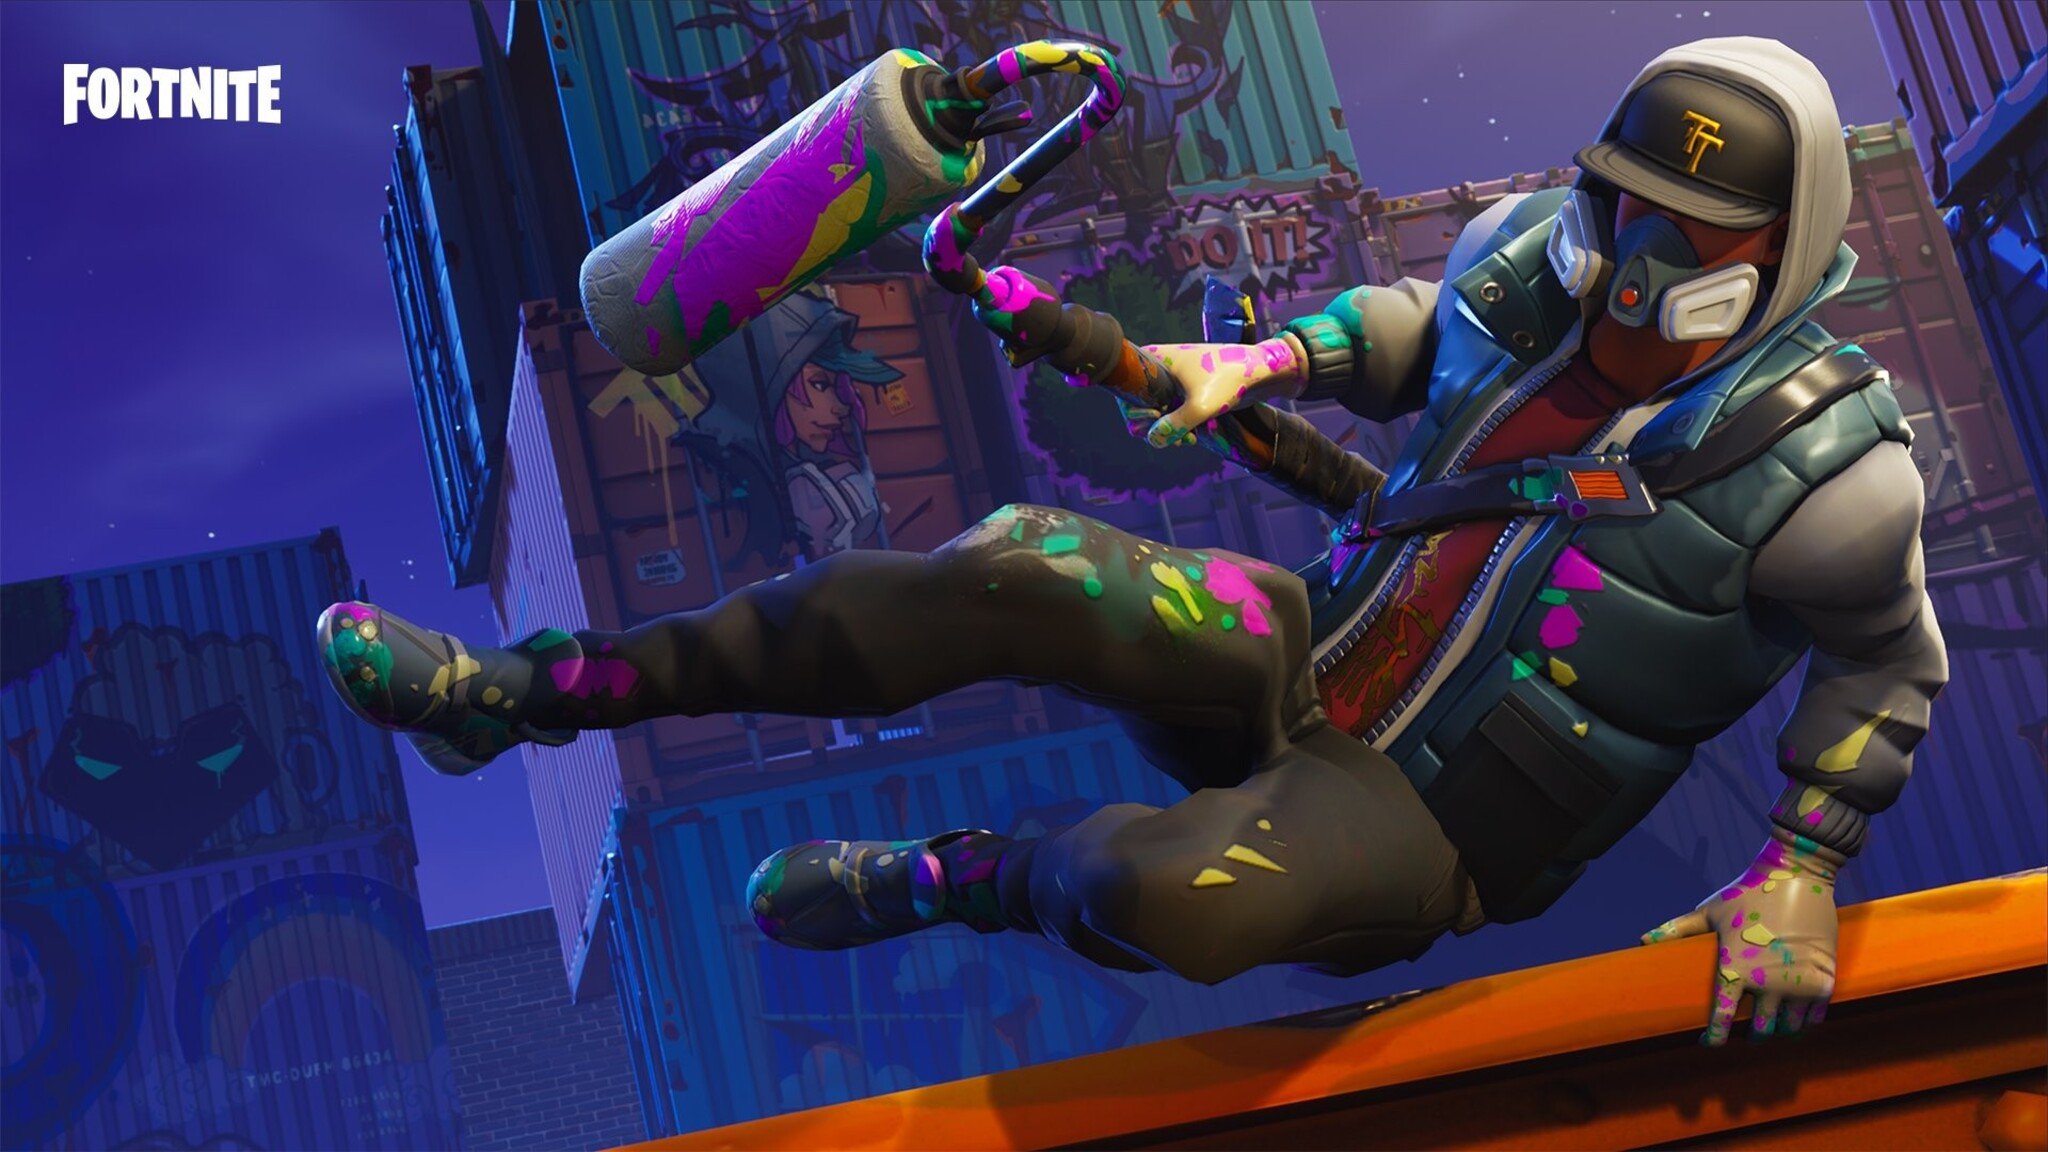 2048x1152 Fortnite Battle Royale Abstrakt Skin 2048x1152 Resolution Hd 4k Wallpapers Images Backgrounds Photos And Pictures